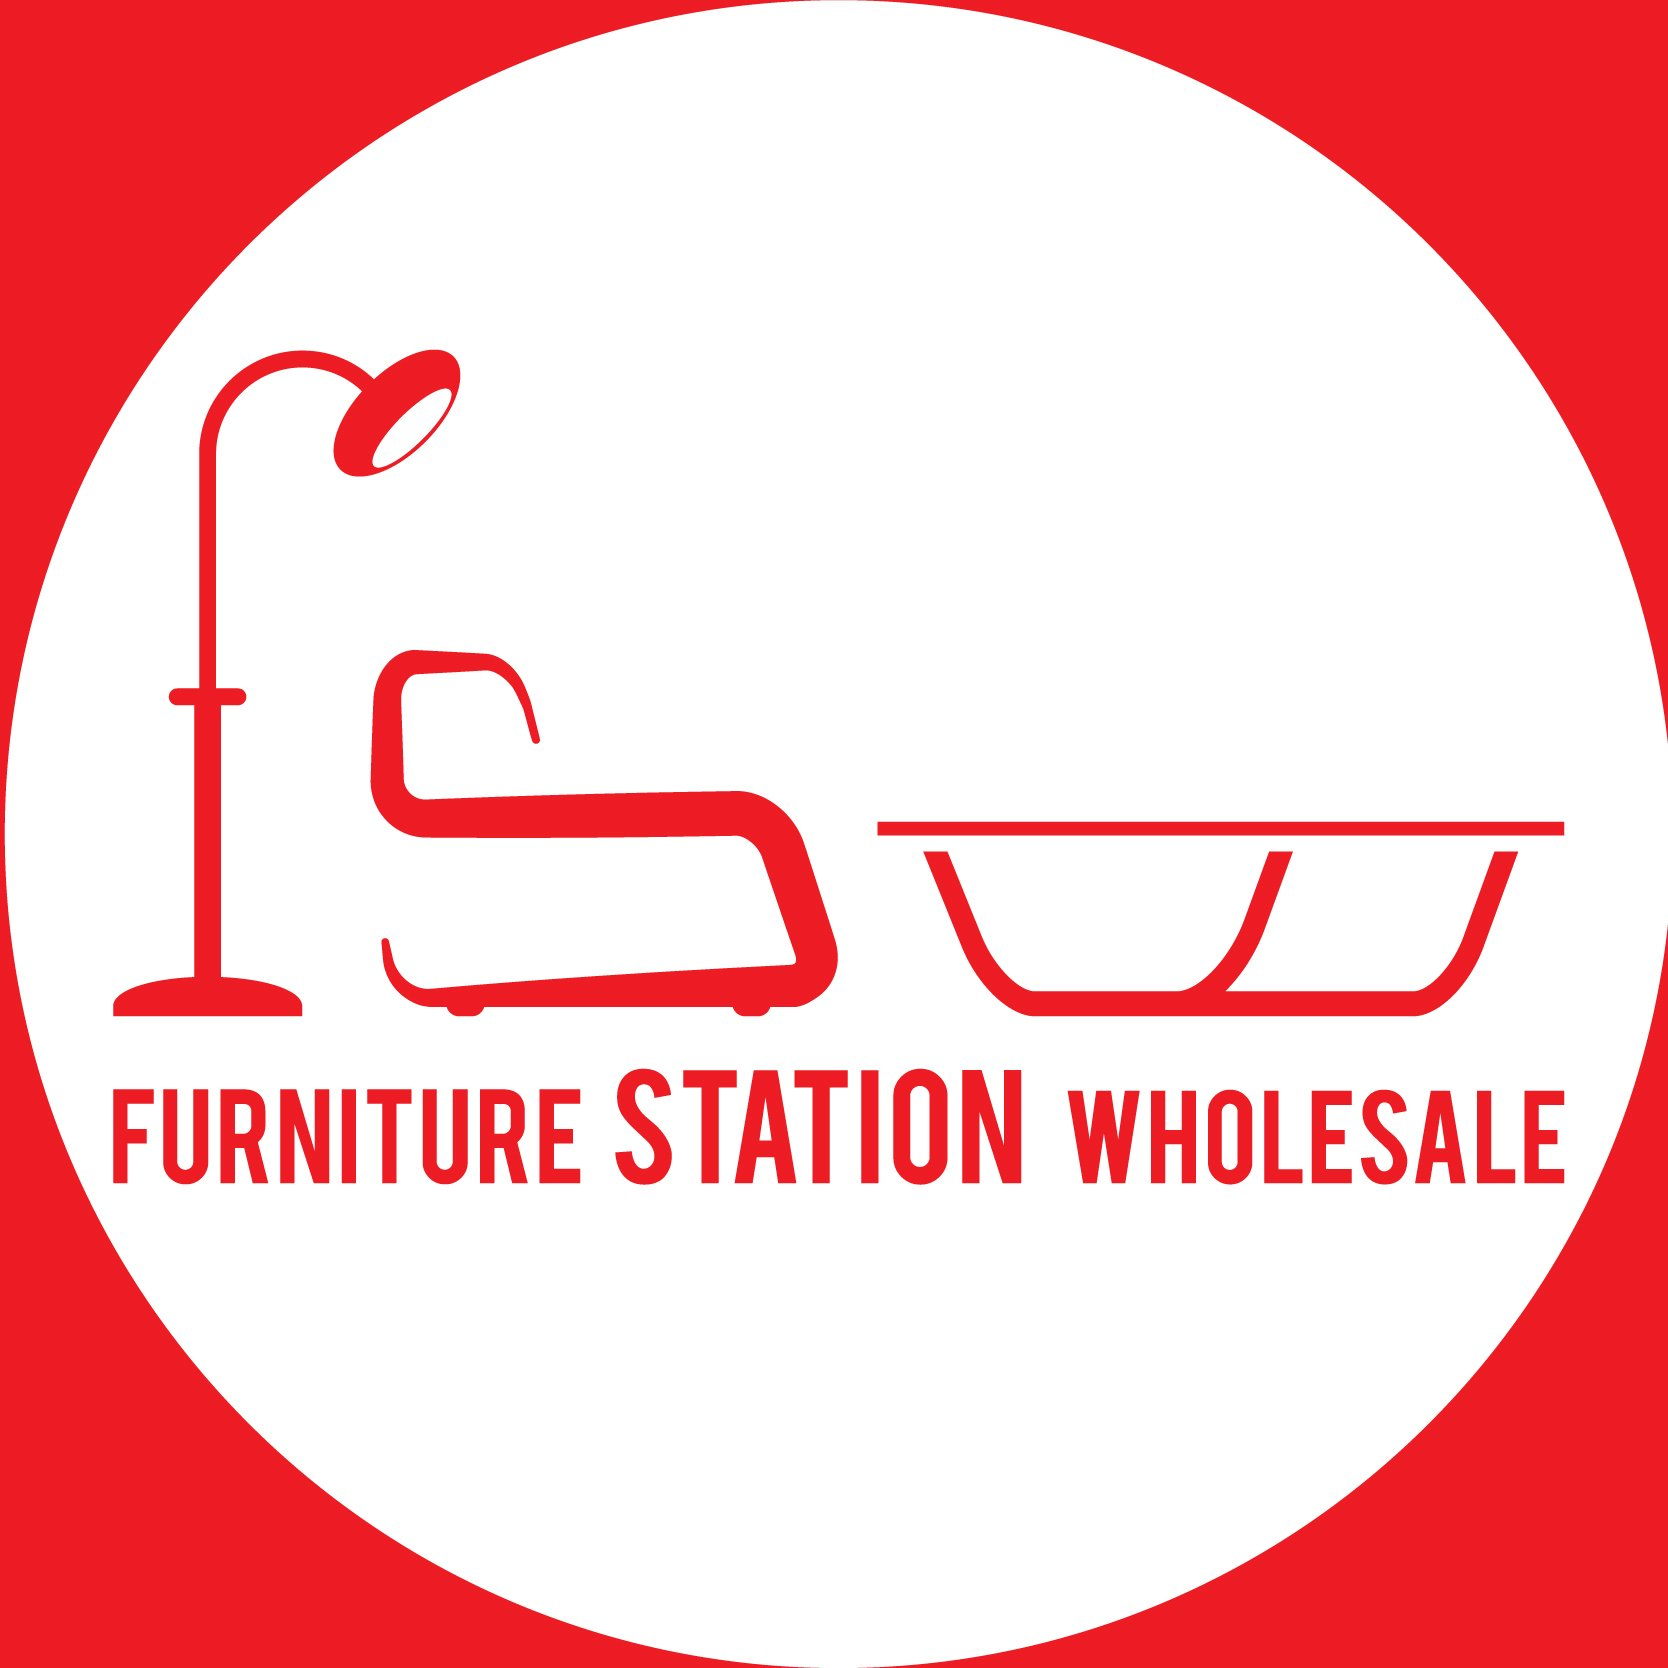 Exceptional Furniture Station Wholesale Logo